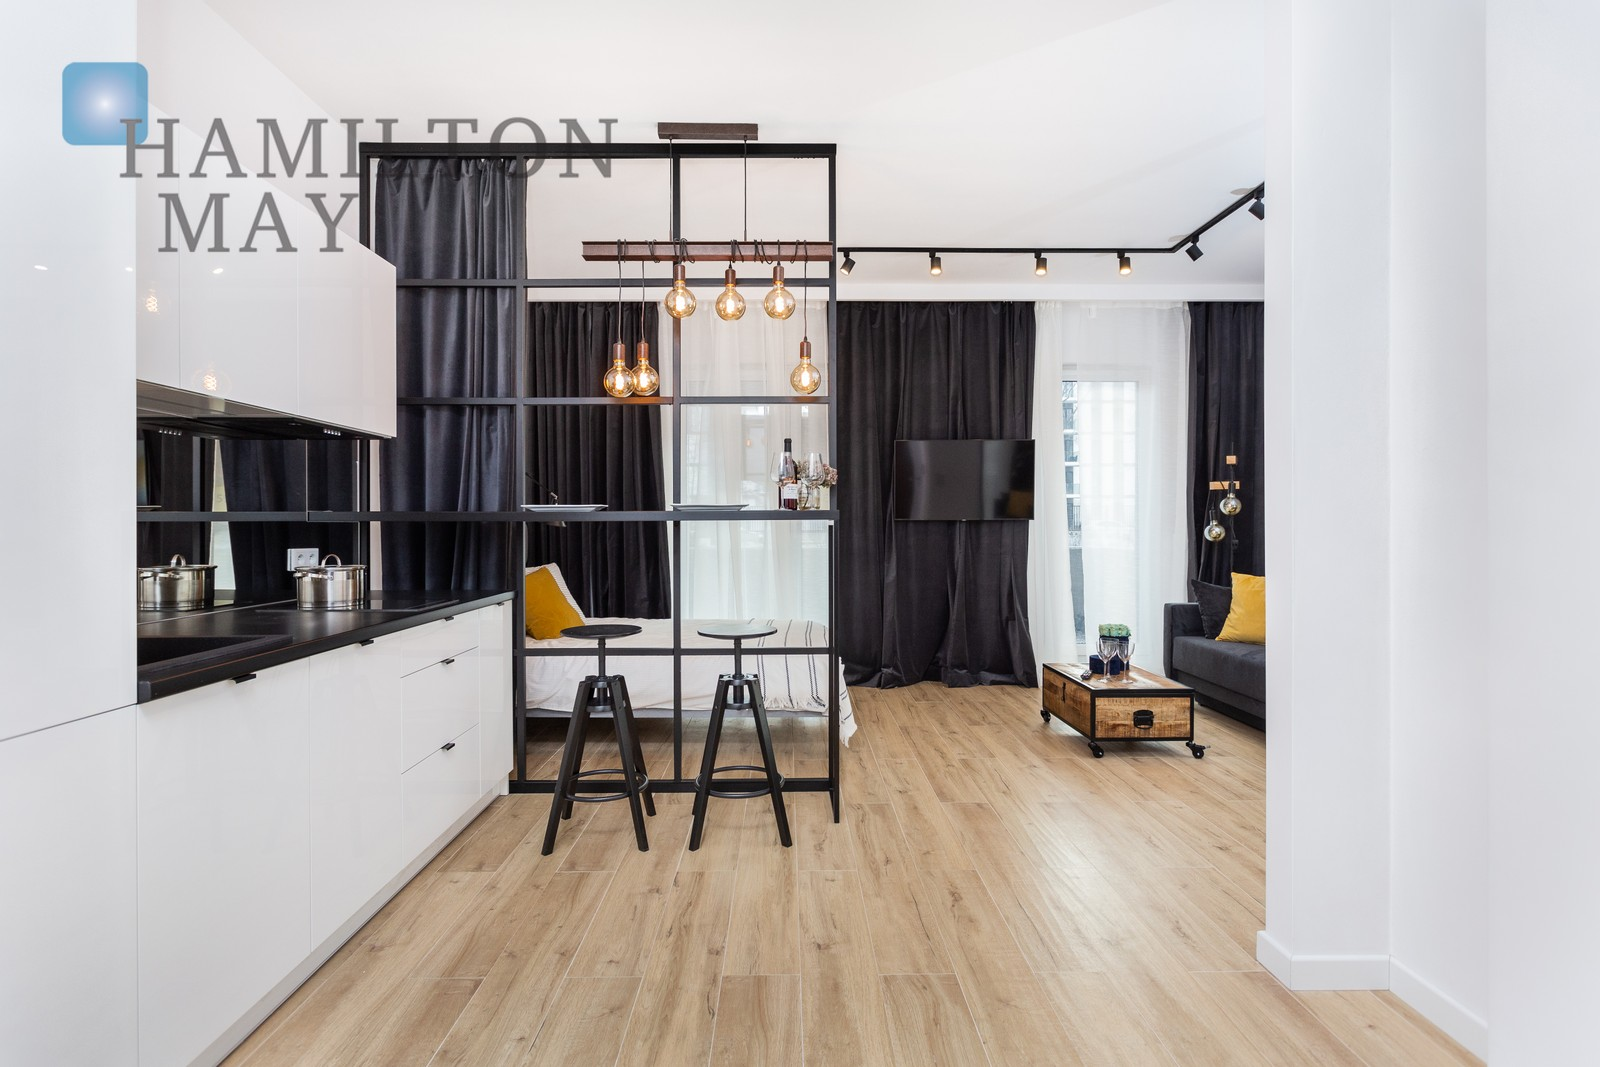 New apartment offered for sale in the center of Krakow, at Rakowicka street, in a newly finished Steam Park investment Krakow for sale